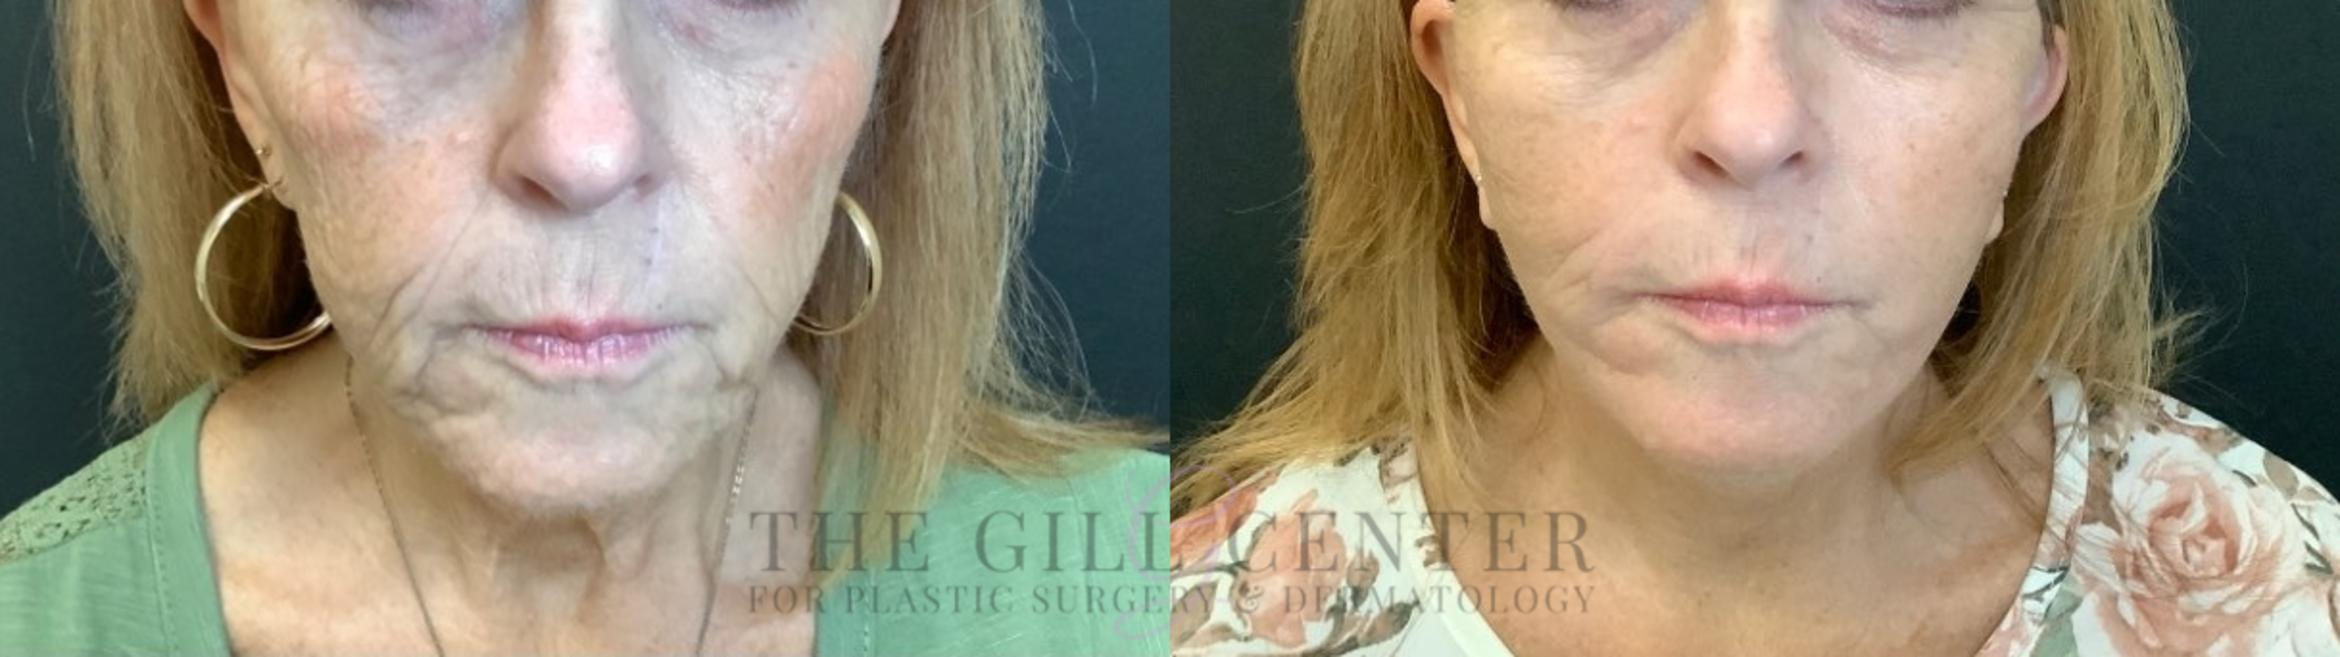 Face & Neck Lift Case 474 Before & After Front | The Woodlands, TX | The Gill Center for Plastic Surgery and Dermatology